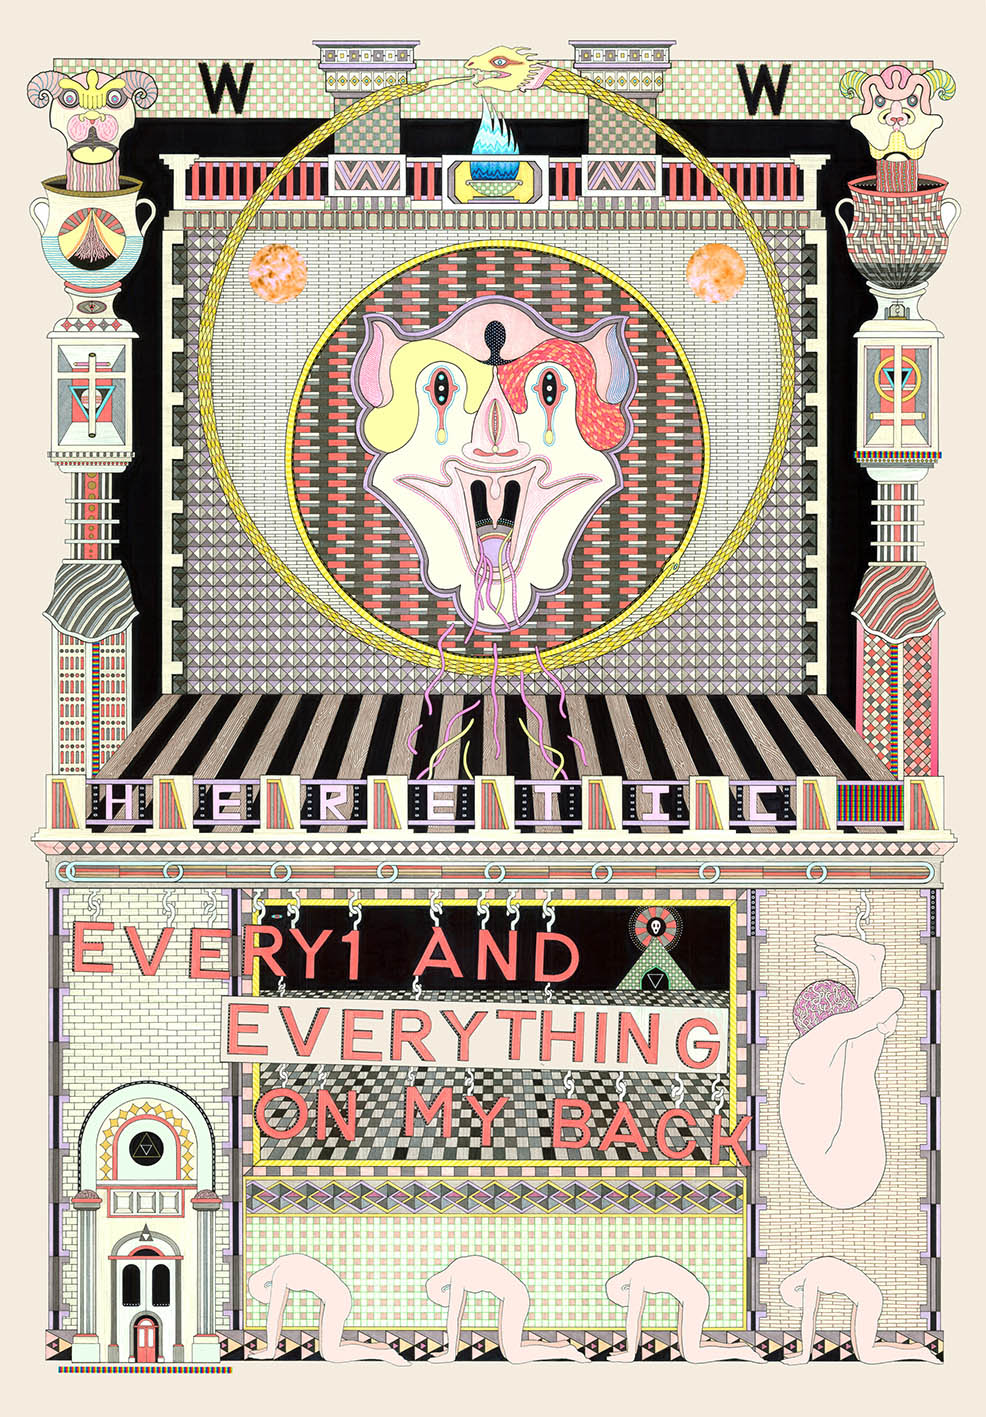 Every1 + Everything on My Back, 2013